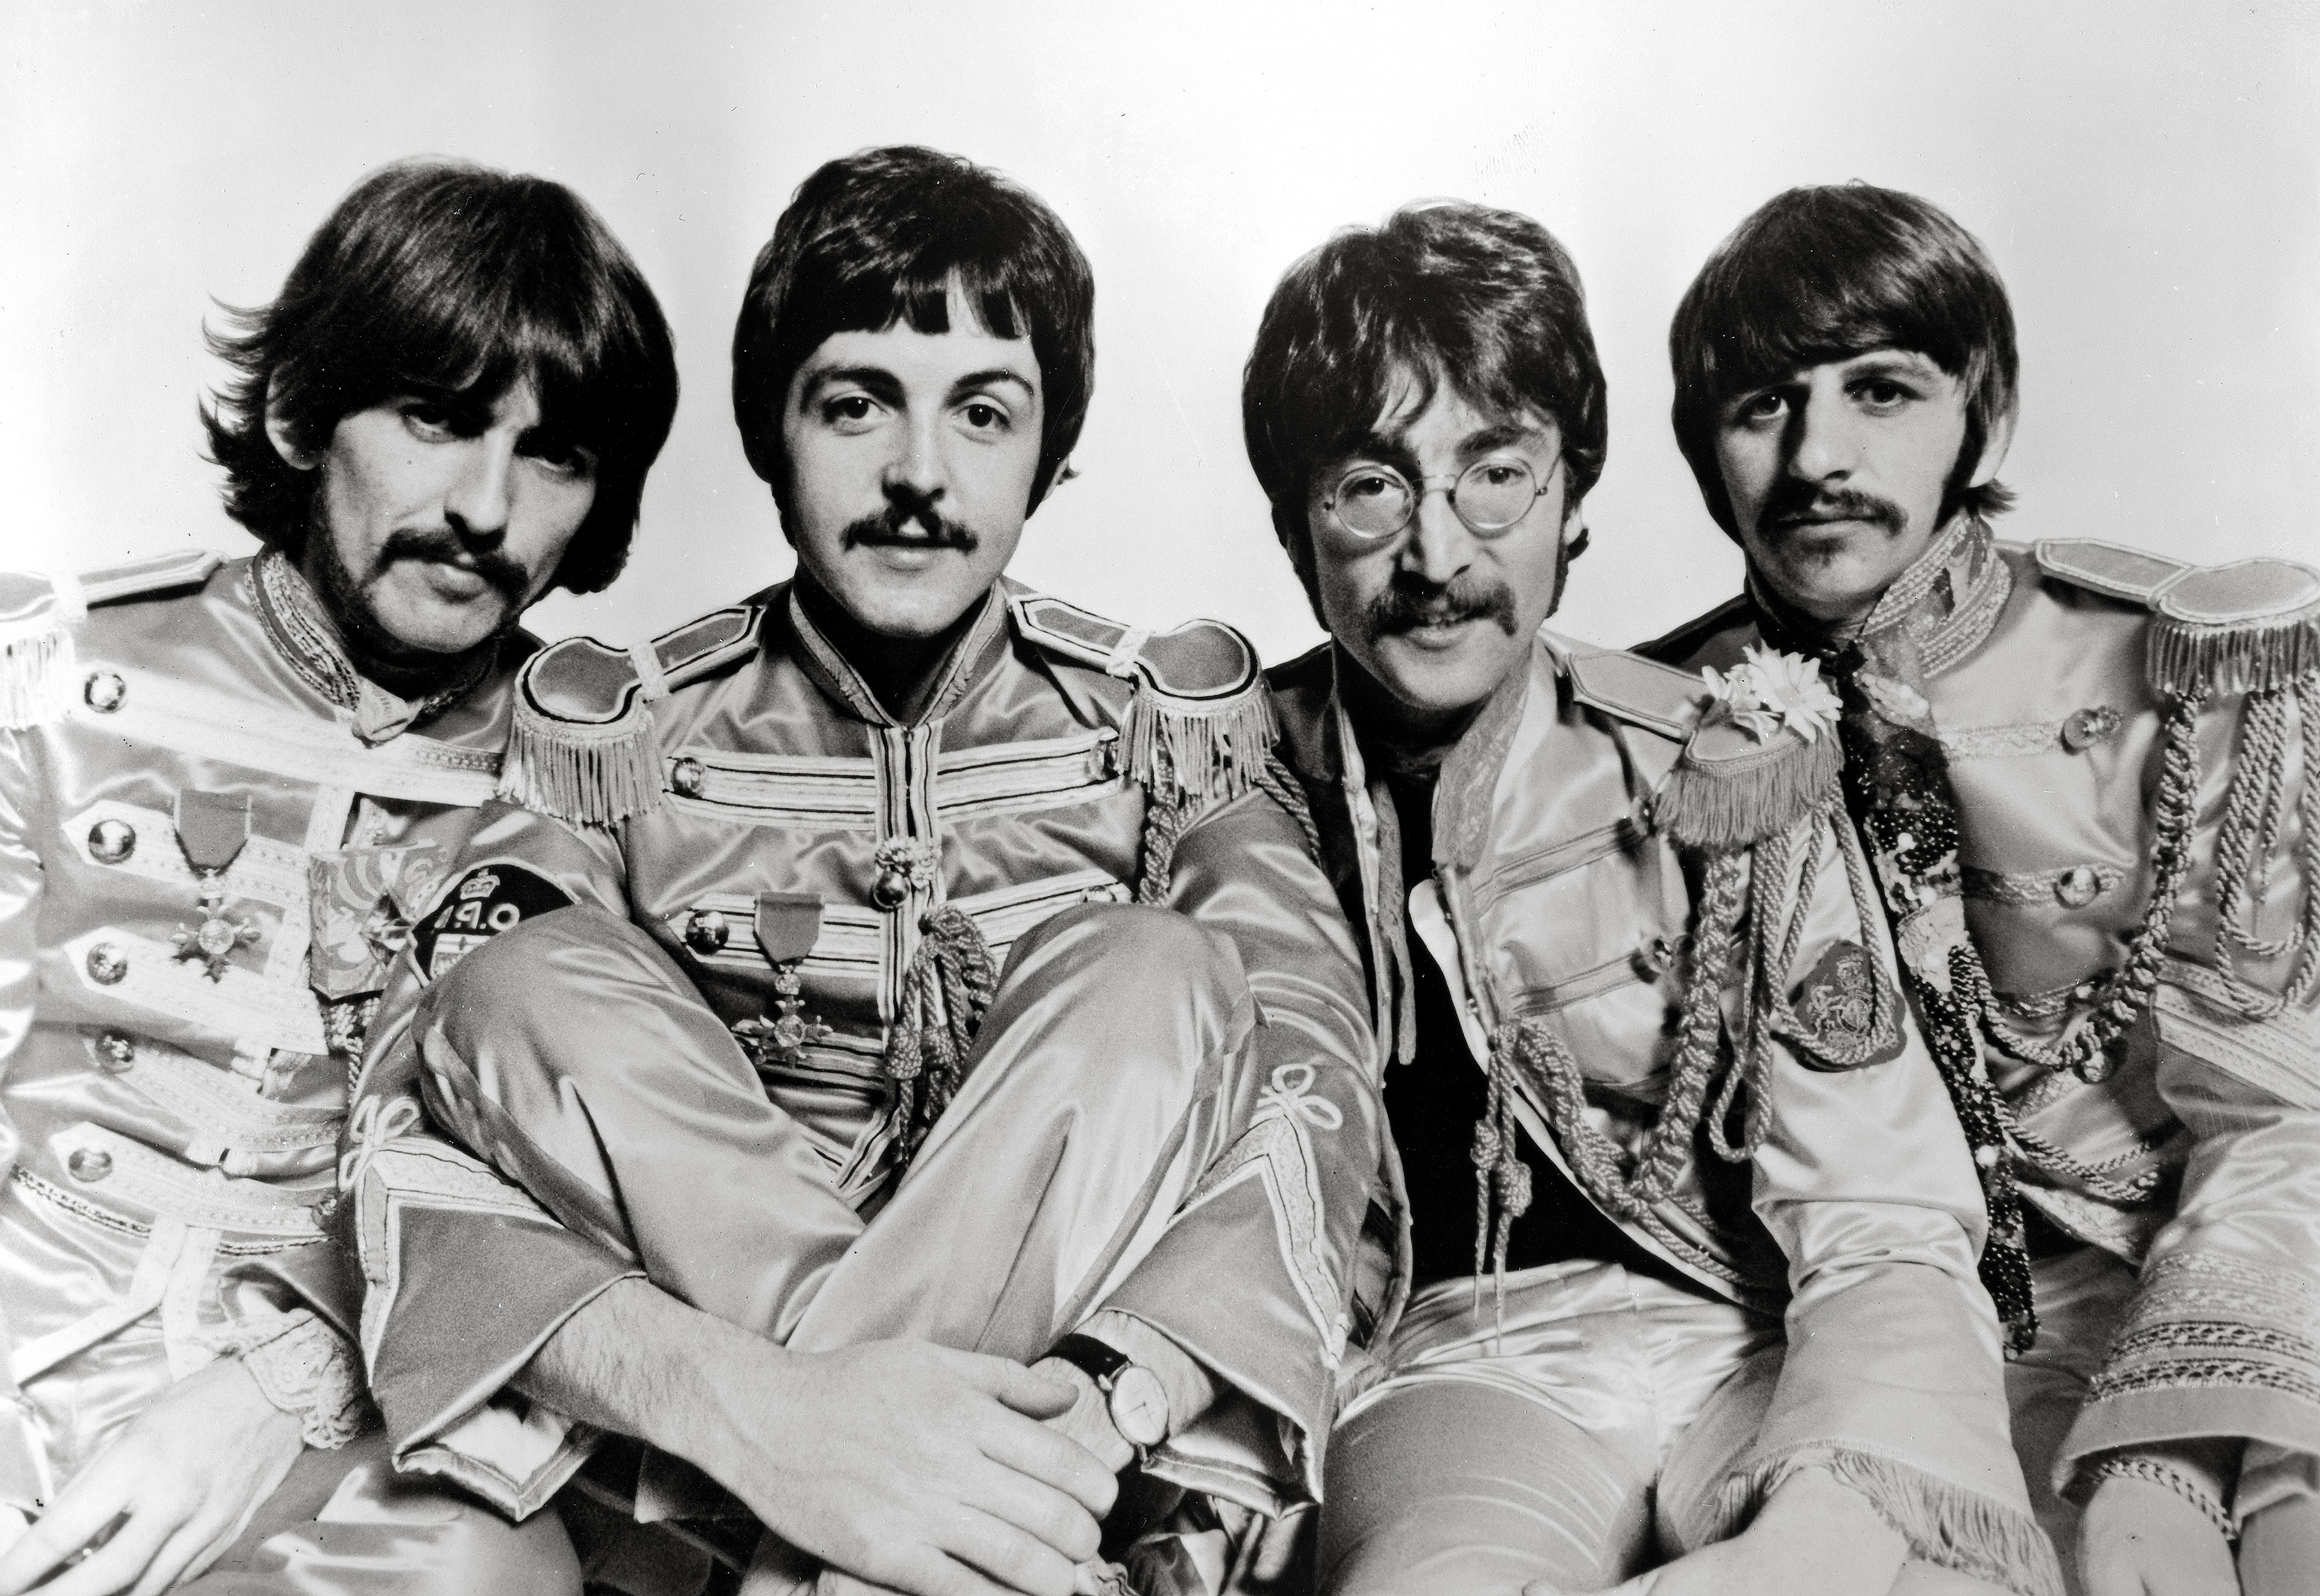 Beatles' 'A Day in the Life': 10 Things You Didn't Know – Rolling Stone